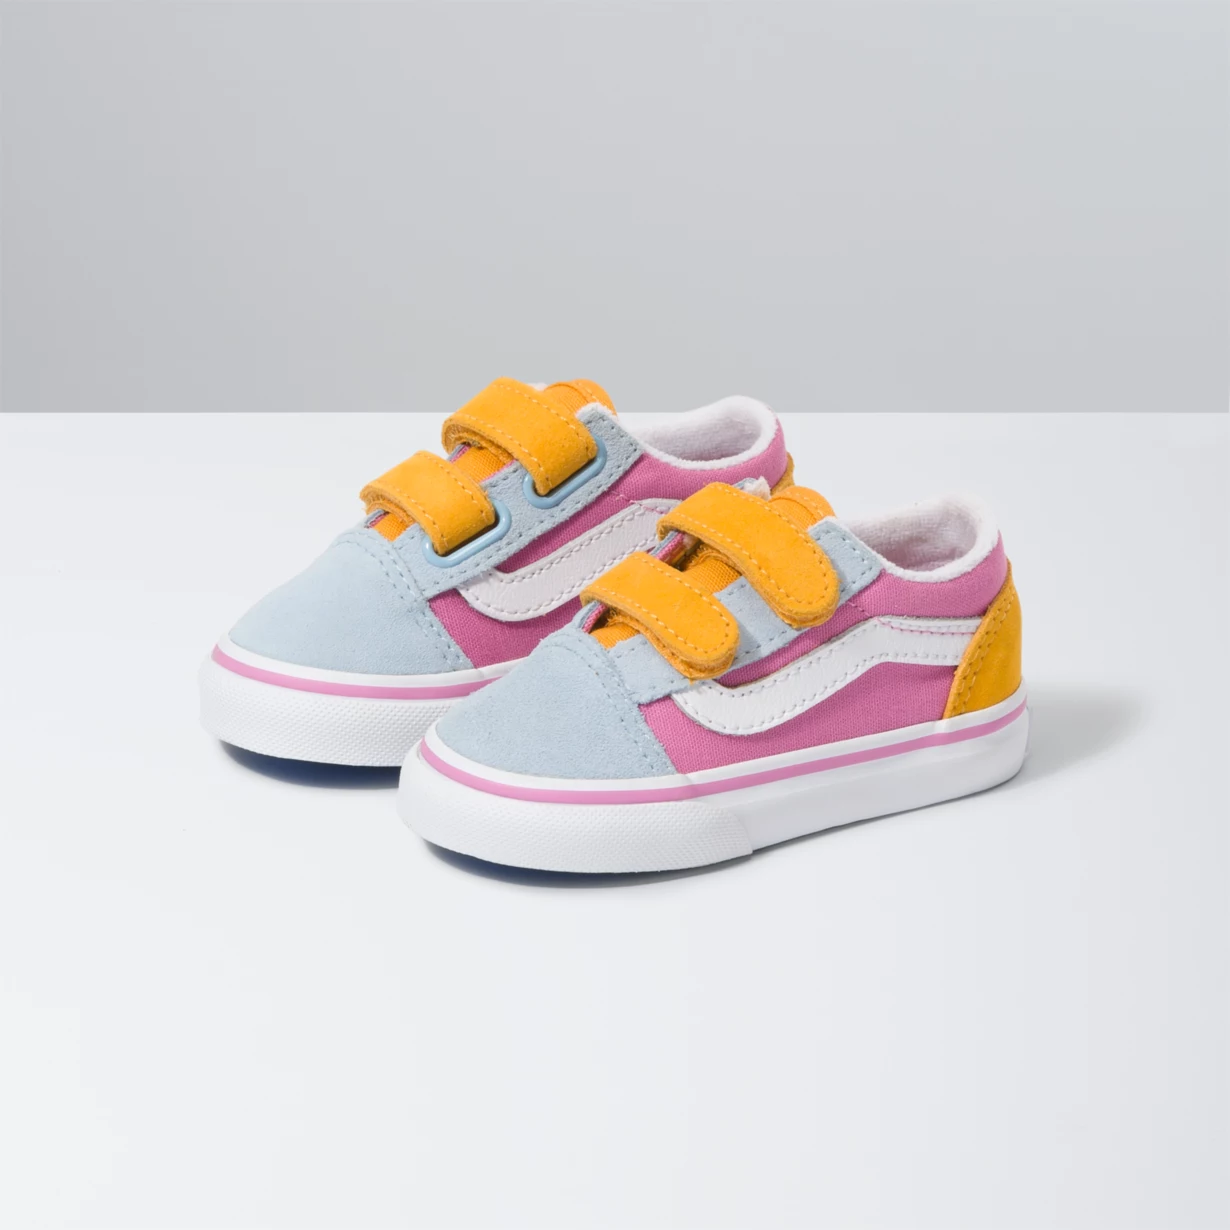 Toddler shoes, Boys shoes kids